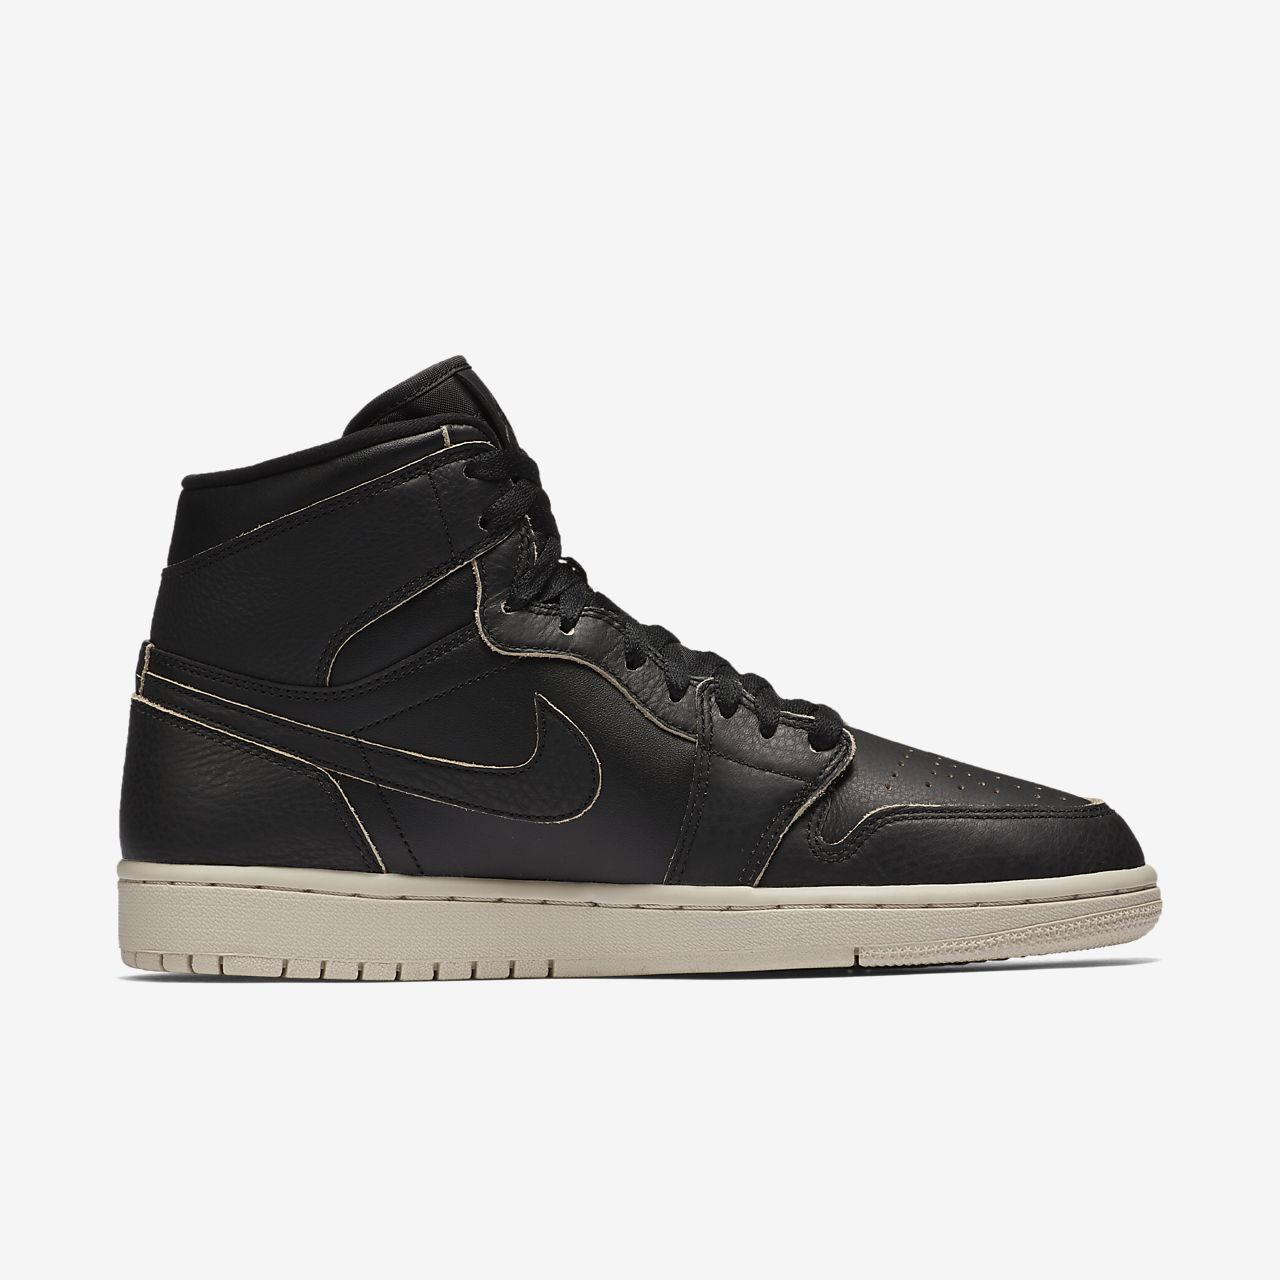 jordan air 1 retro high nz